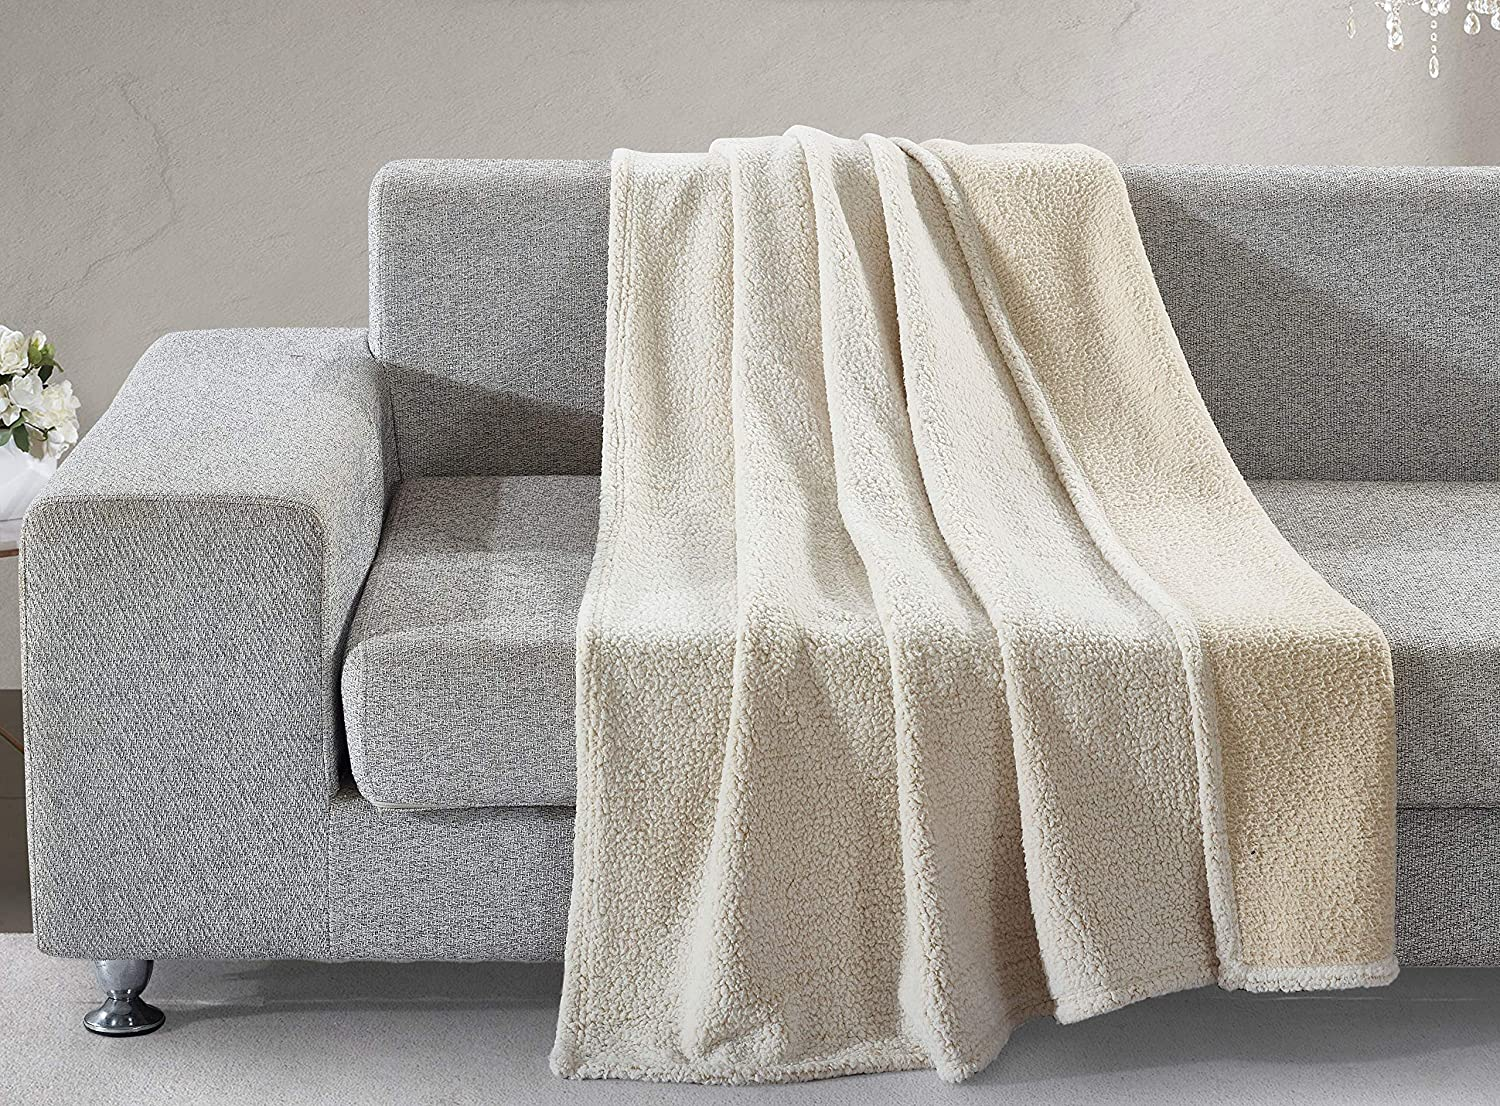 """Home Collections Beige Back Print Sherpa Throw Blanket, 50""""x60"""", Model: 021166149792"""